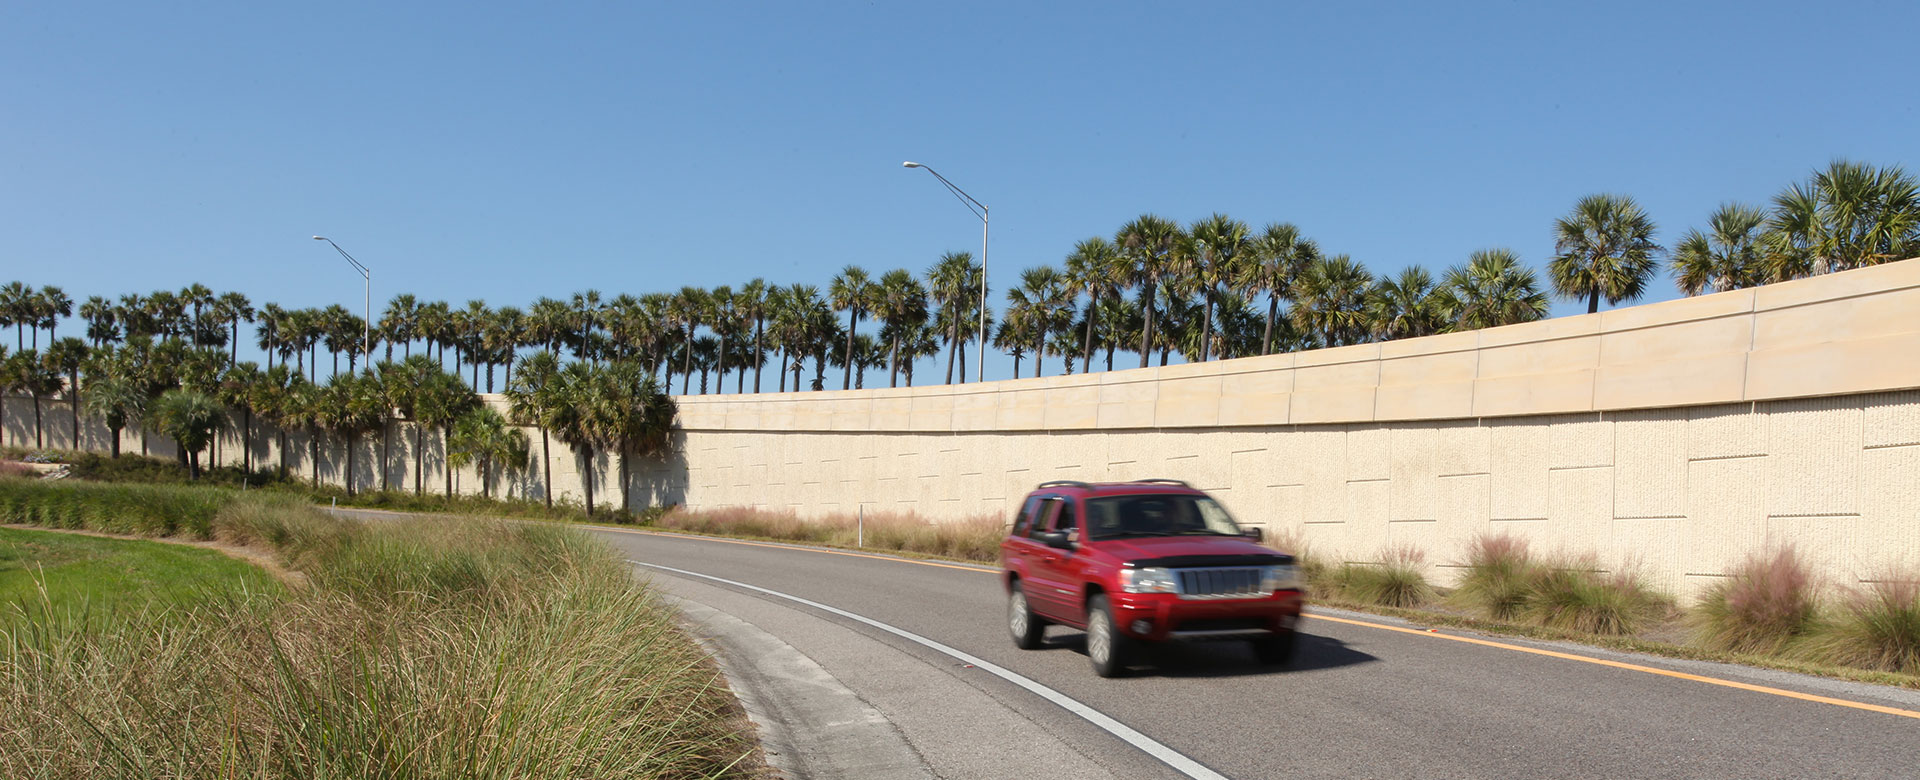 SUV on entry ramp to Central Florida Expressway